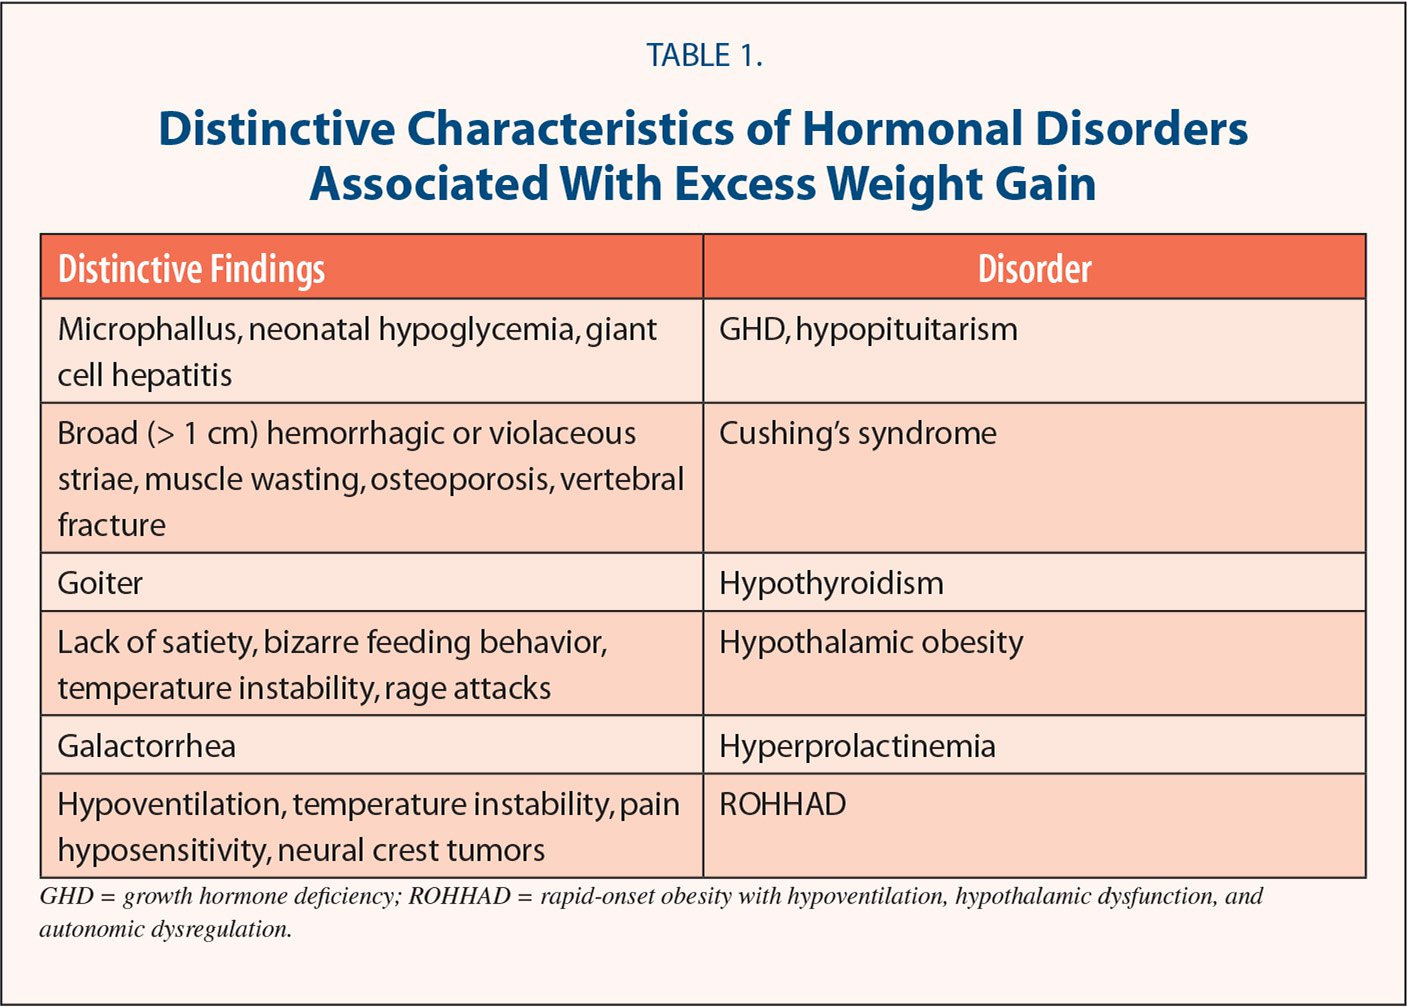 Distinctive Characteristics of Hormonal Disorders Associated With Excess Weight Gain